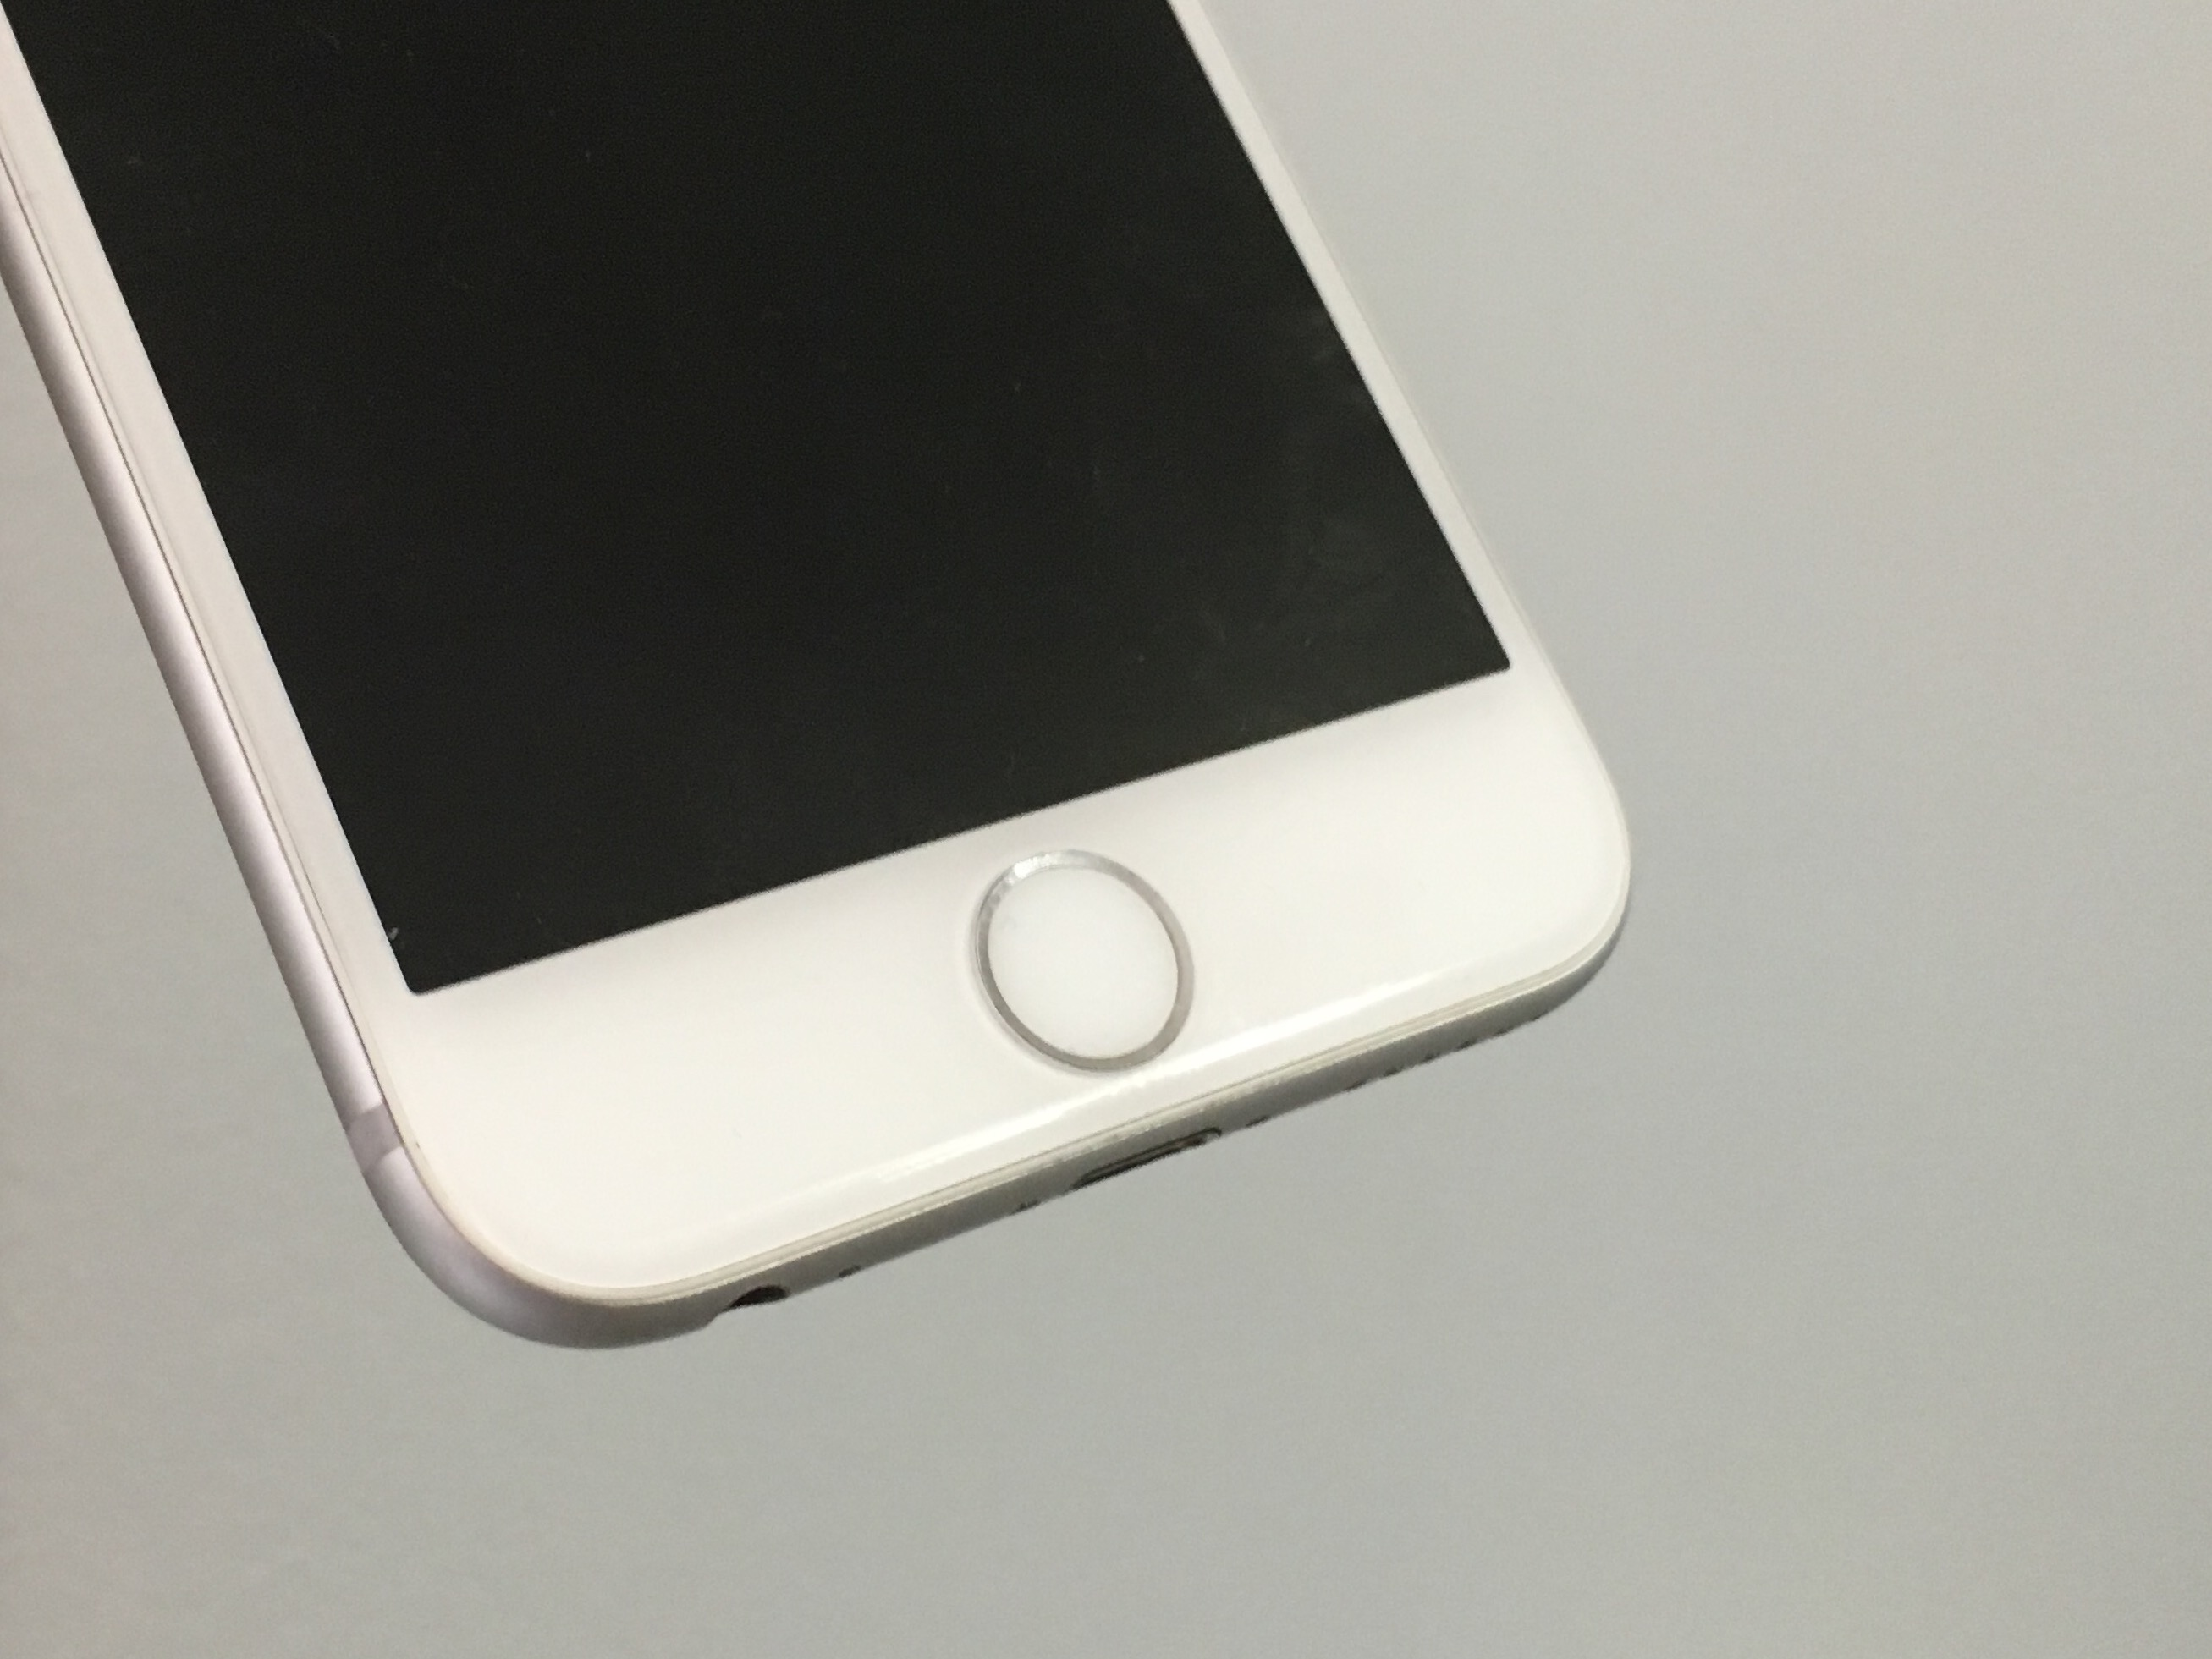 What you need to know about the iPhone 6 Error 53 problem.